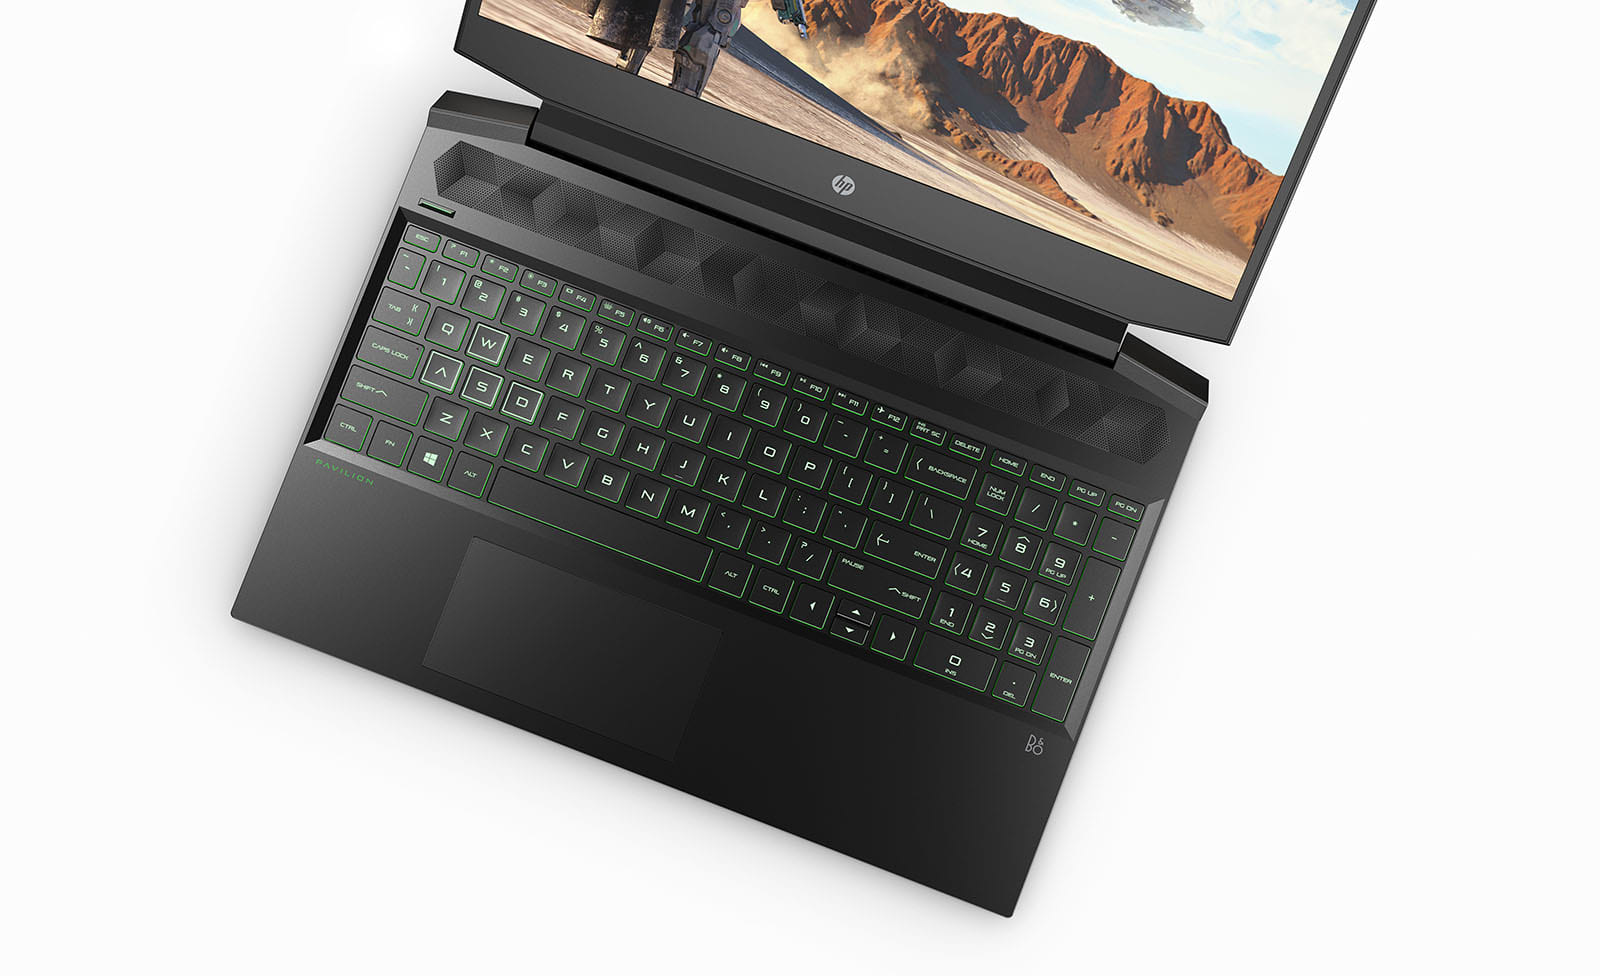 HP Pavilion 15 gaming laptop